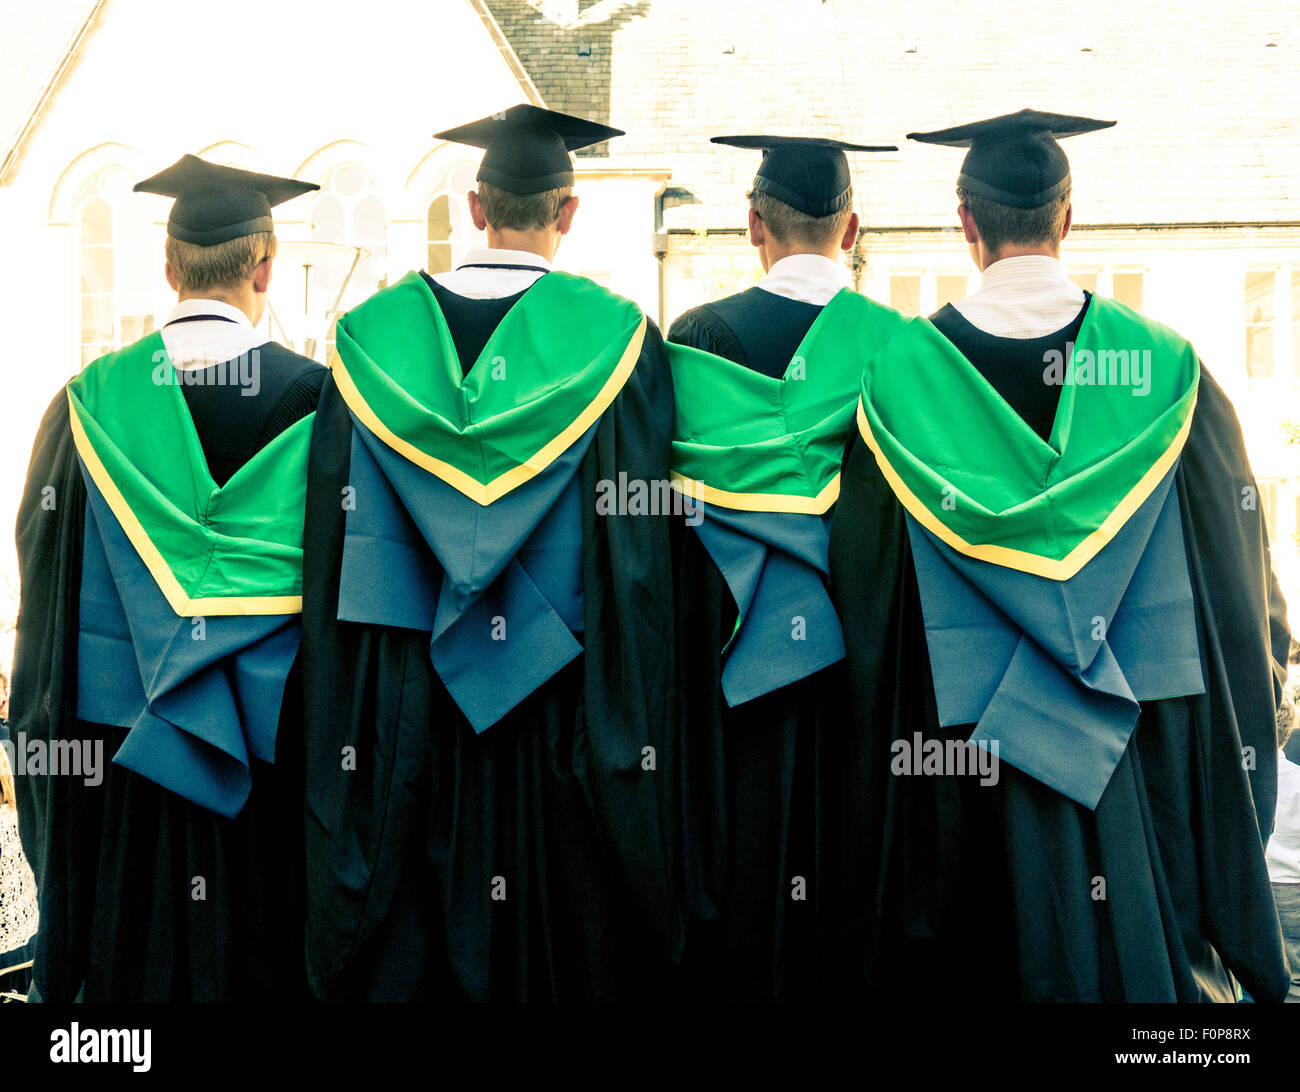 Black Cap And Gown Uk Stock Photos & Black Cap And Gown Uk Stock ...